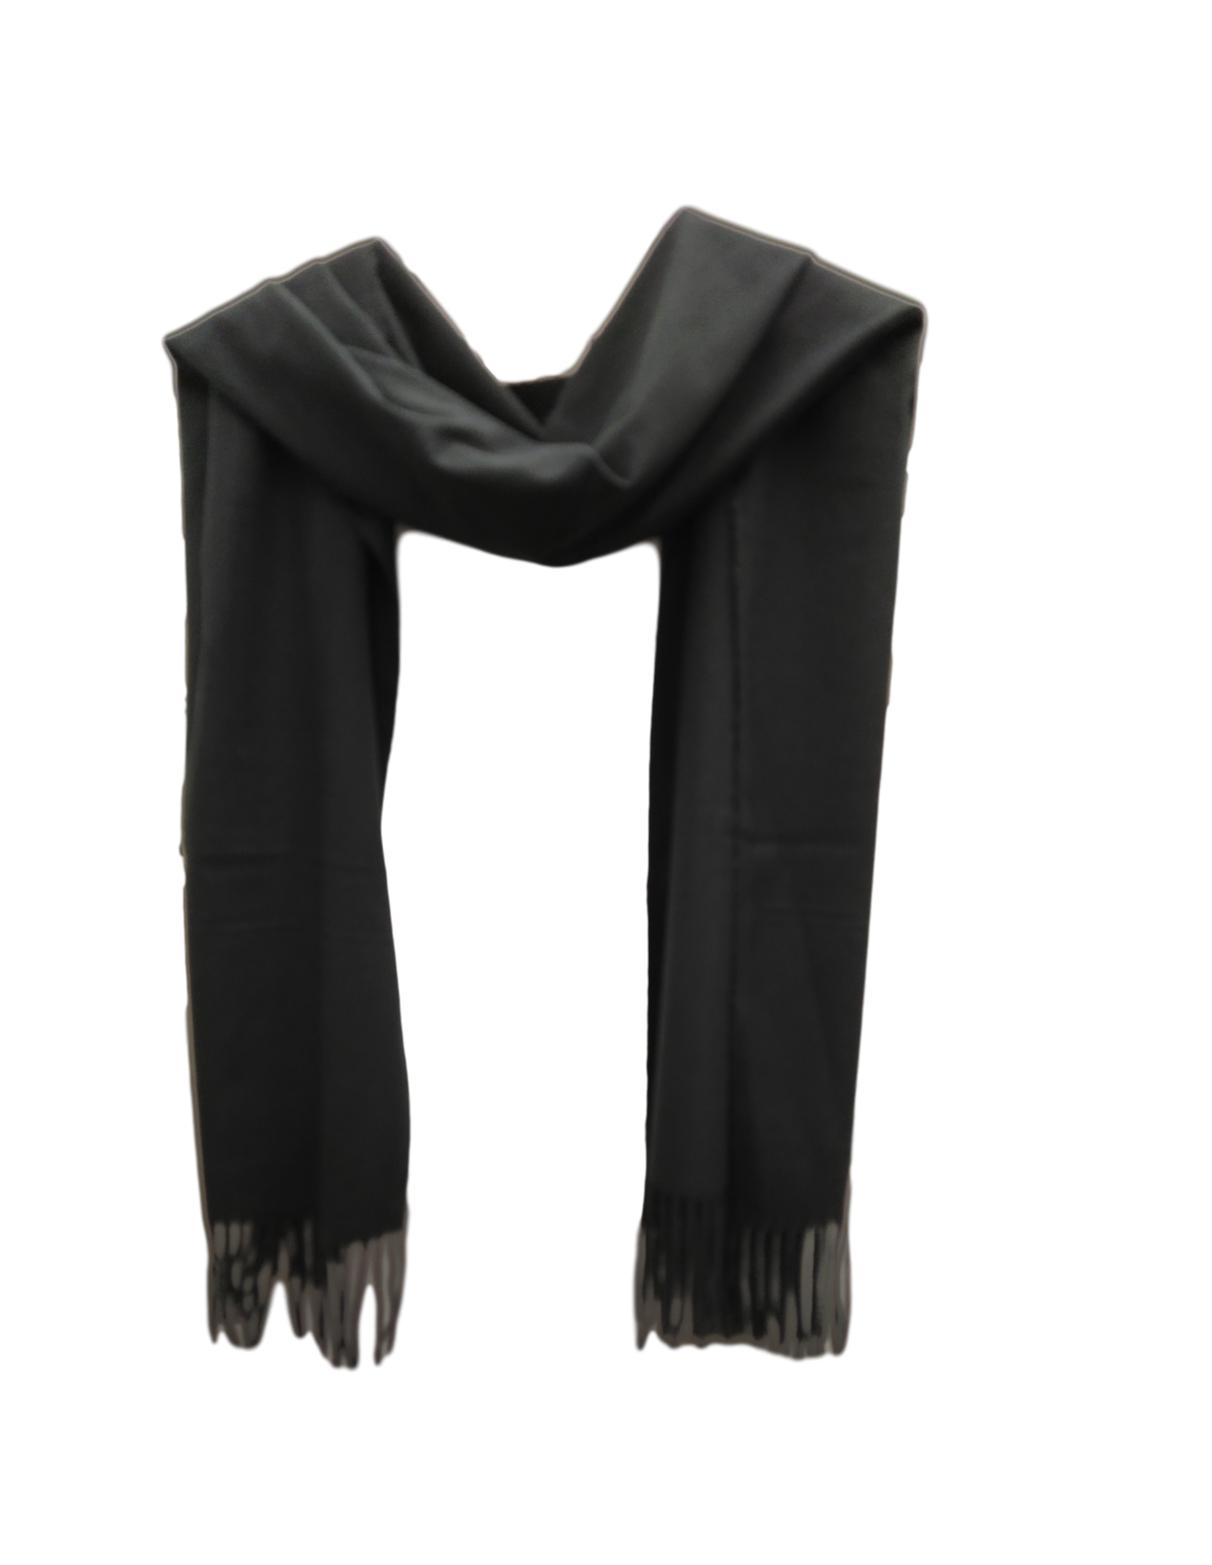 PS003 Black pashmina weight scarf.